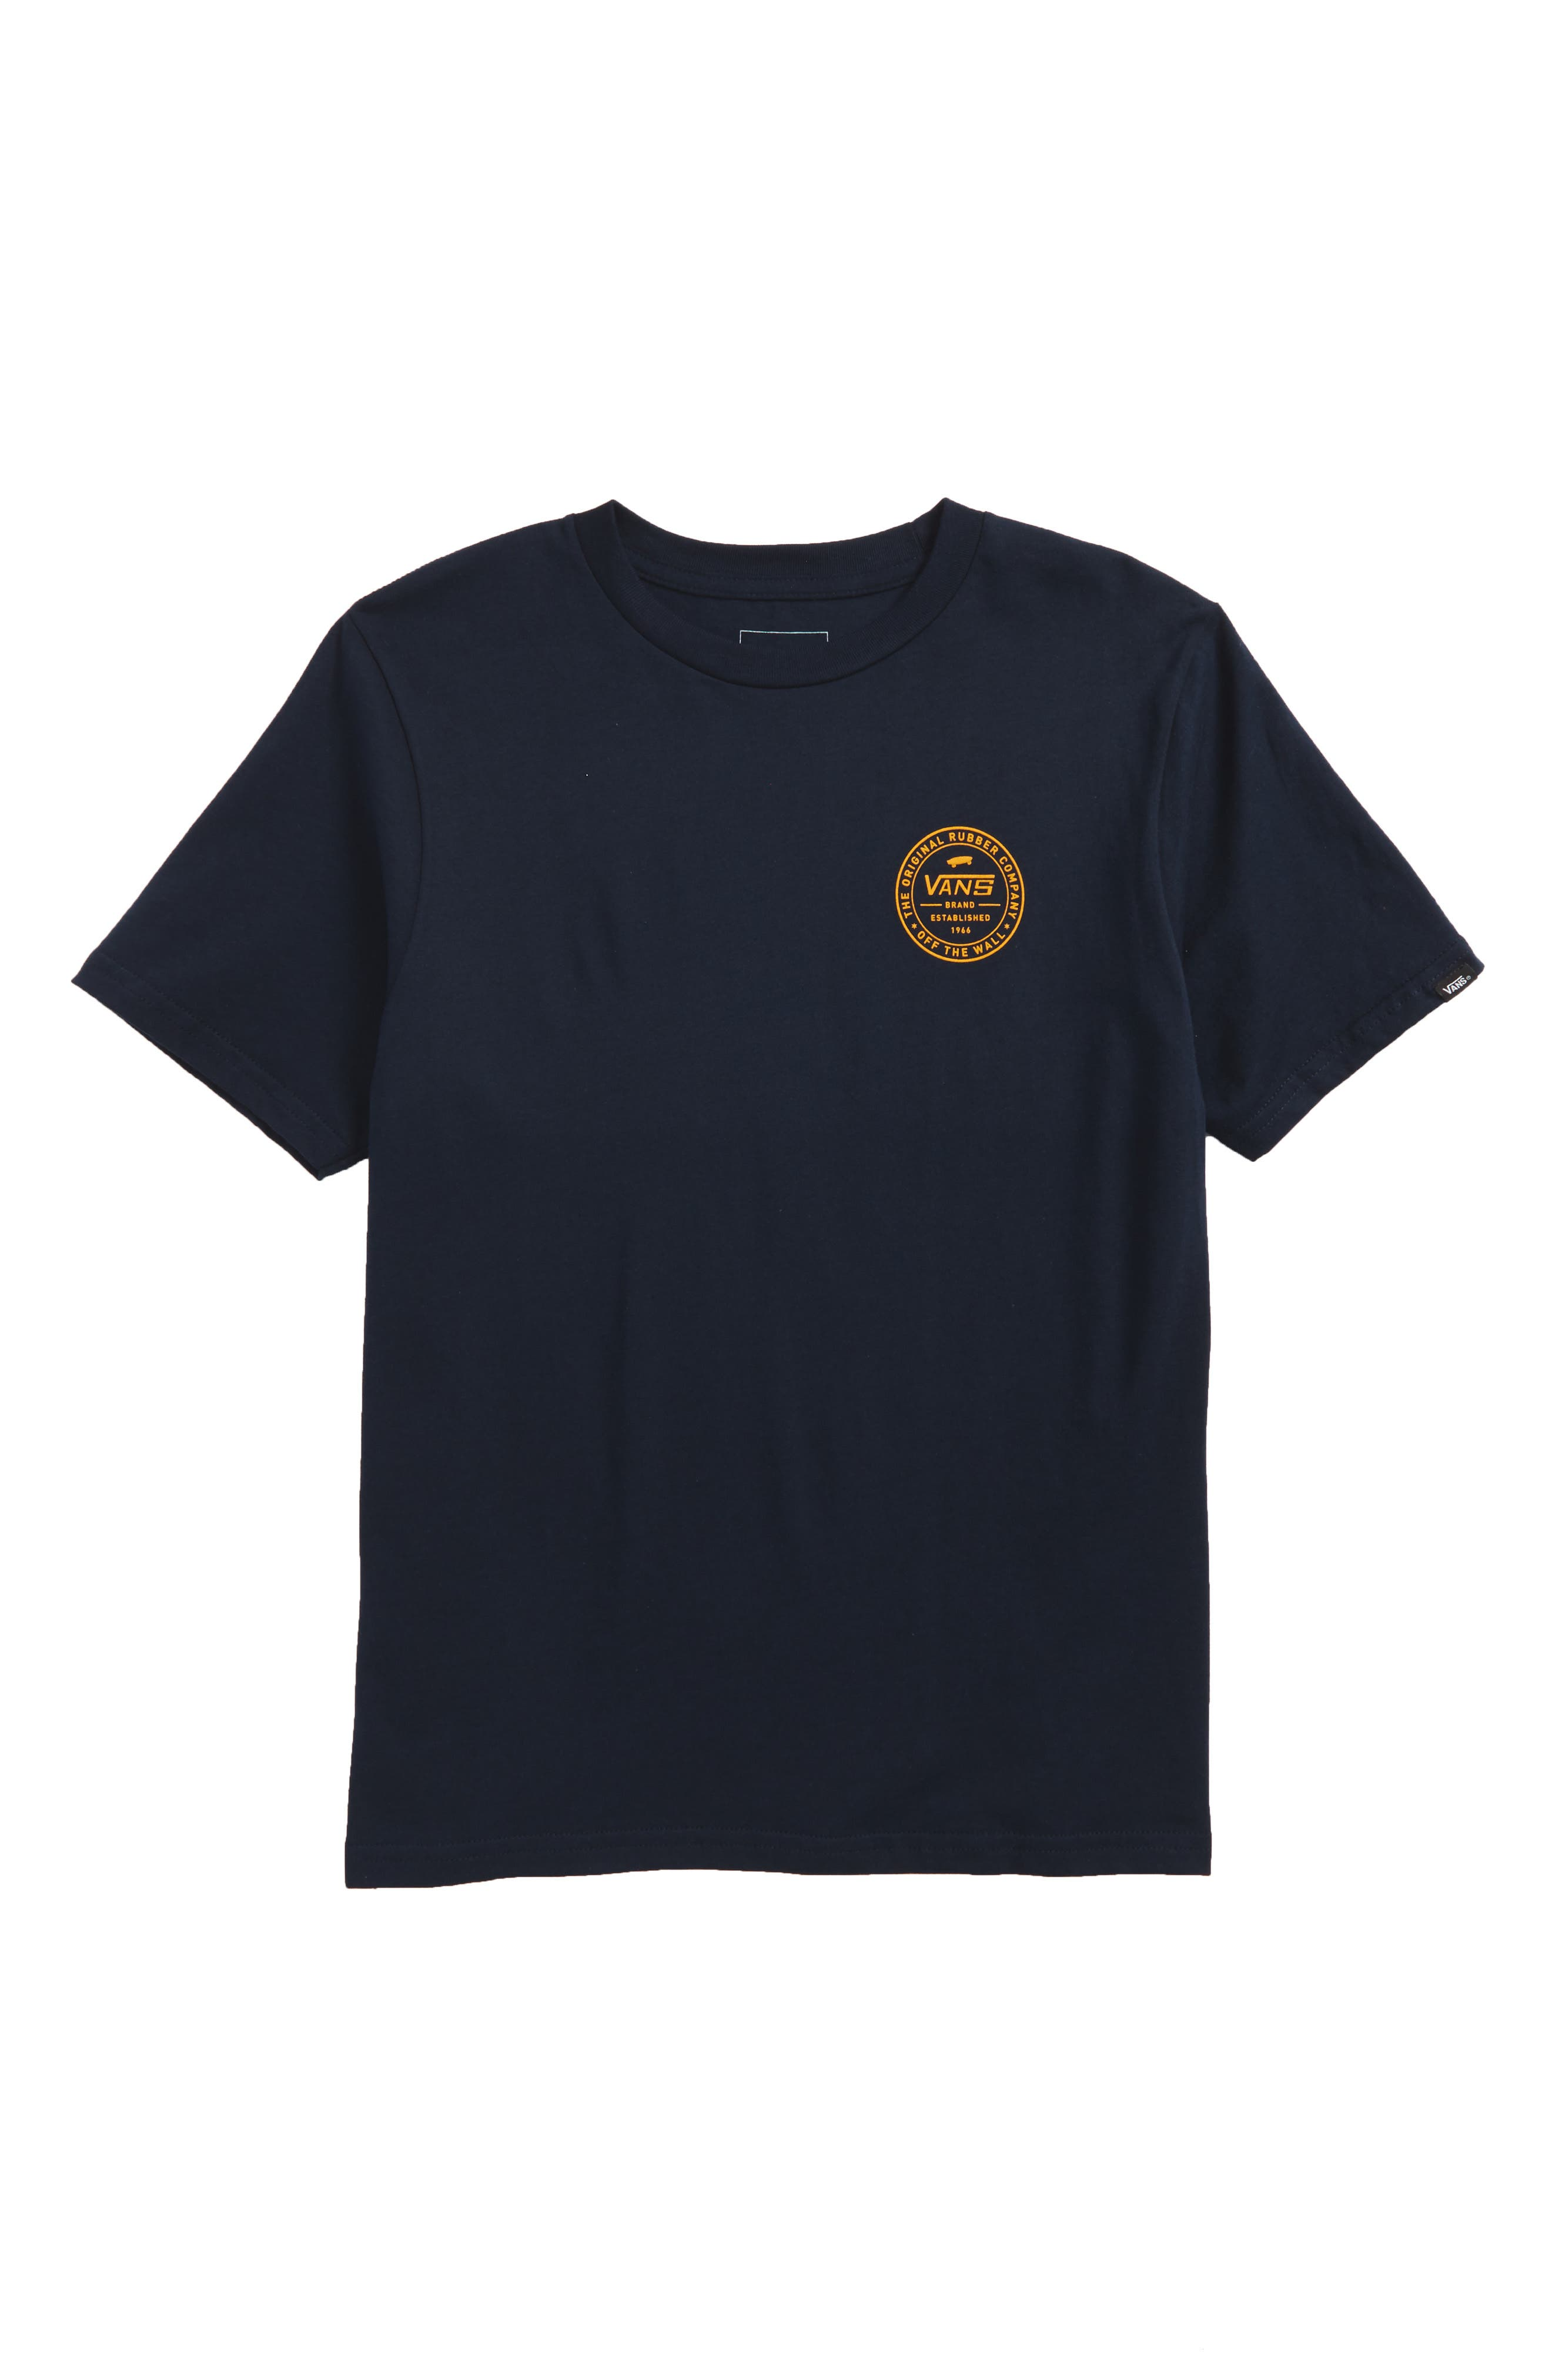 Vans Established '66 Graphic T-Shirt (Big Boys)